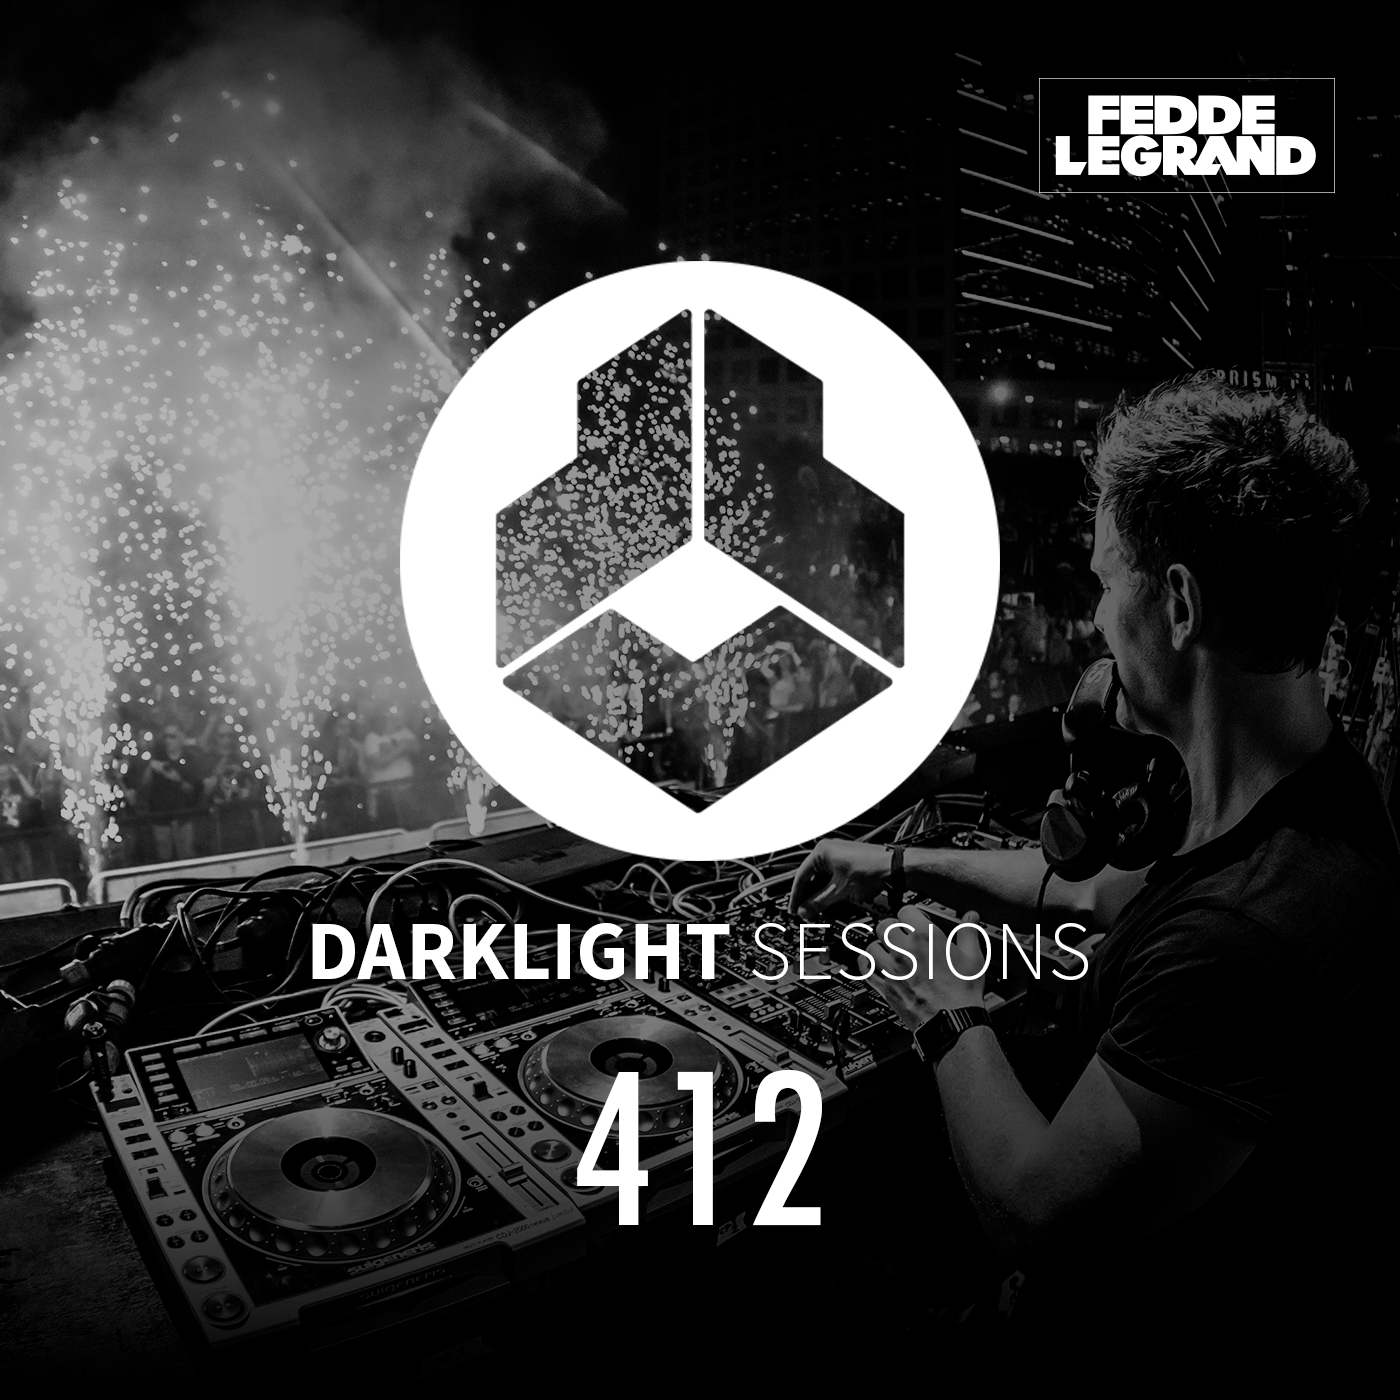 Darklight Sessions 412